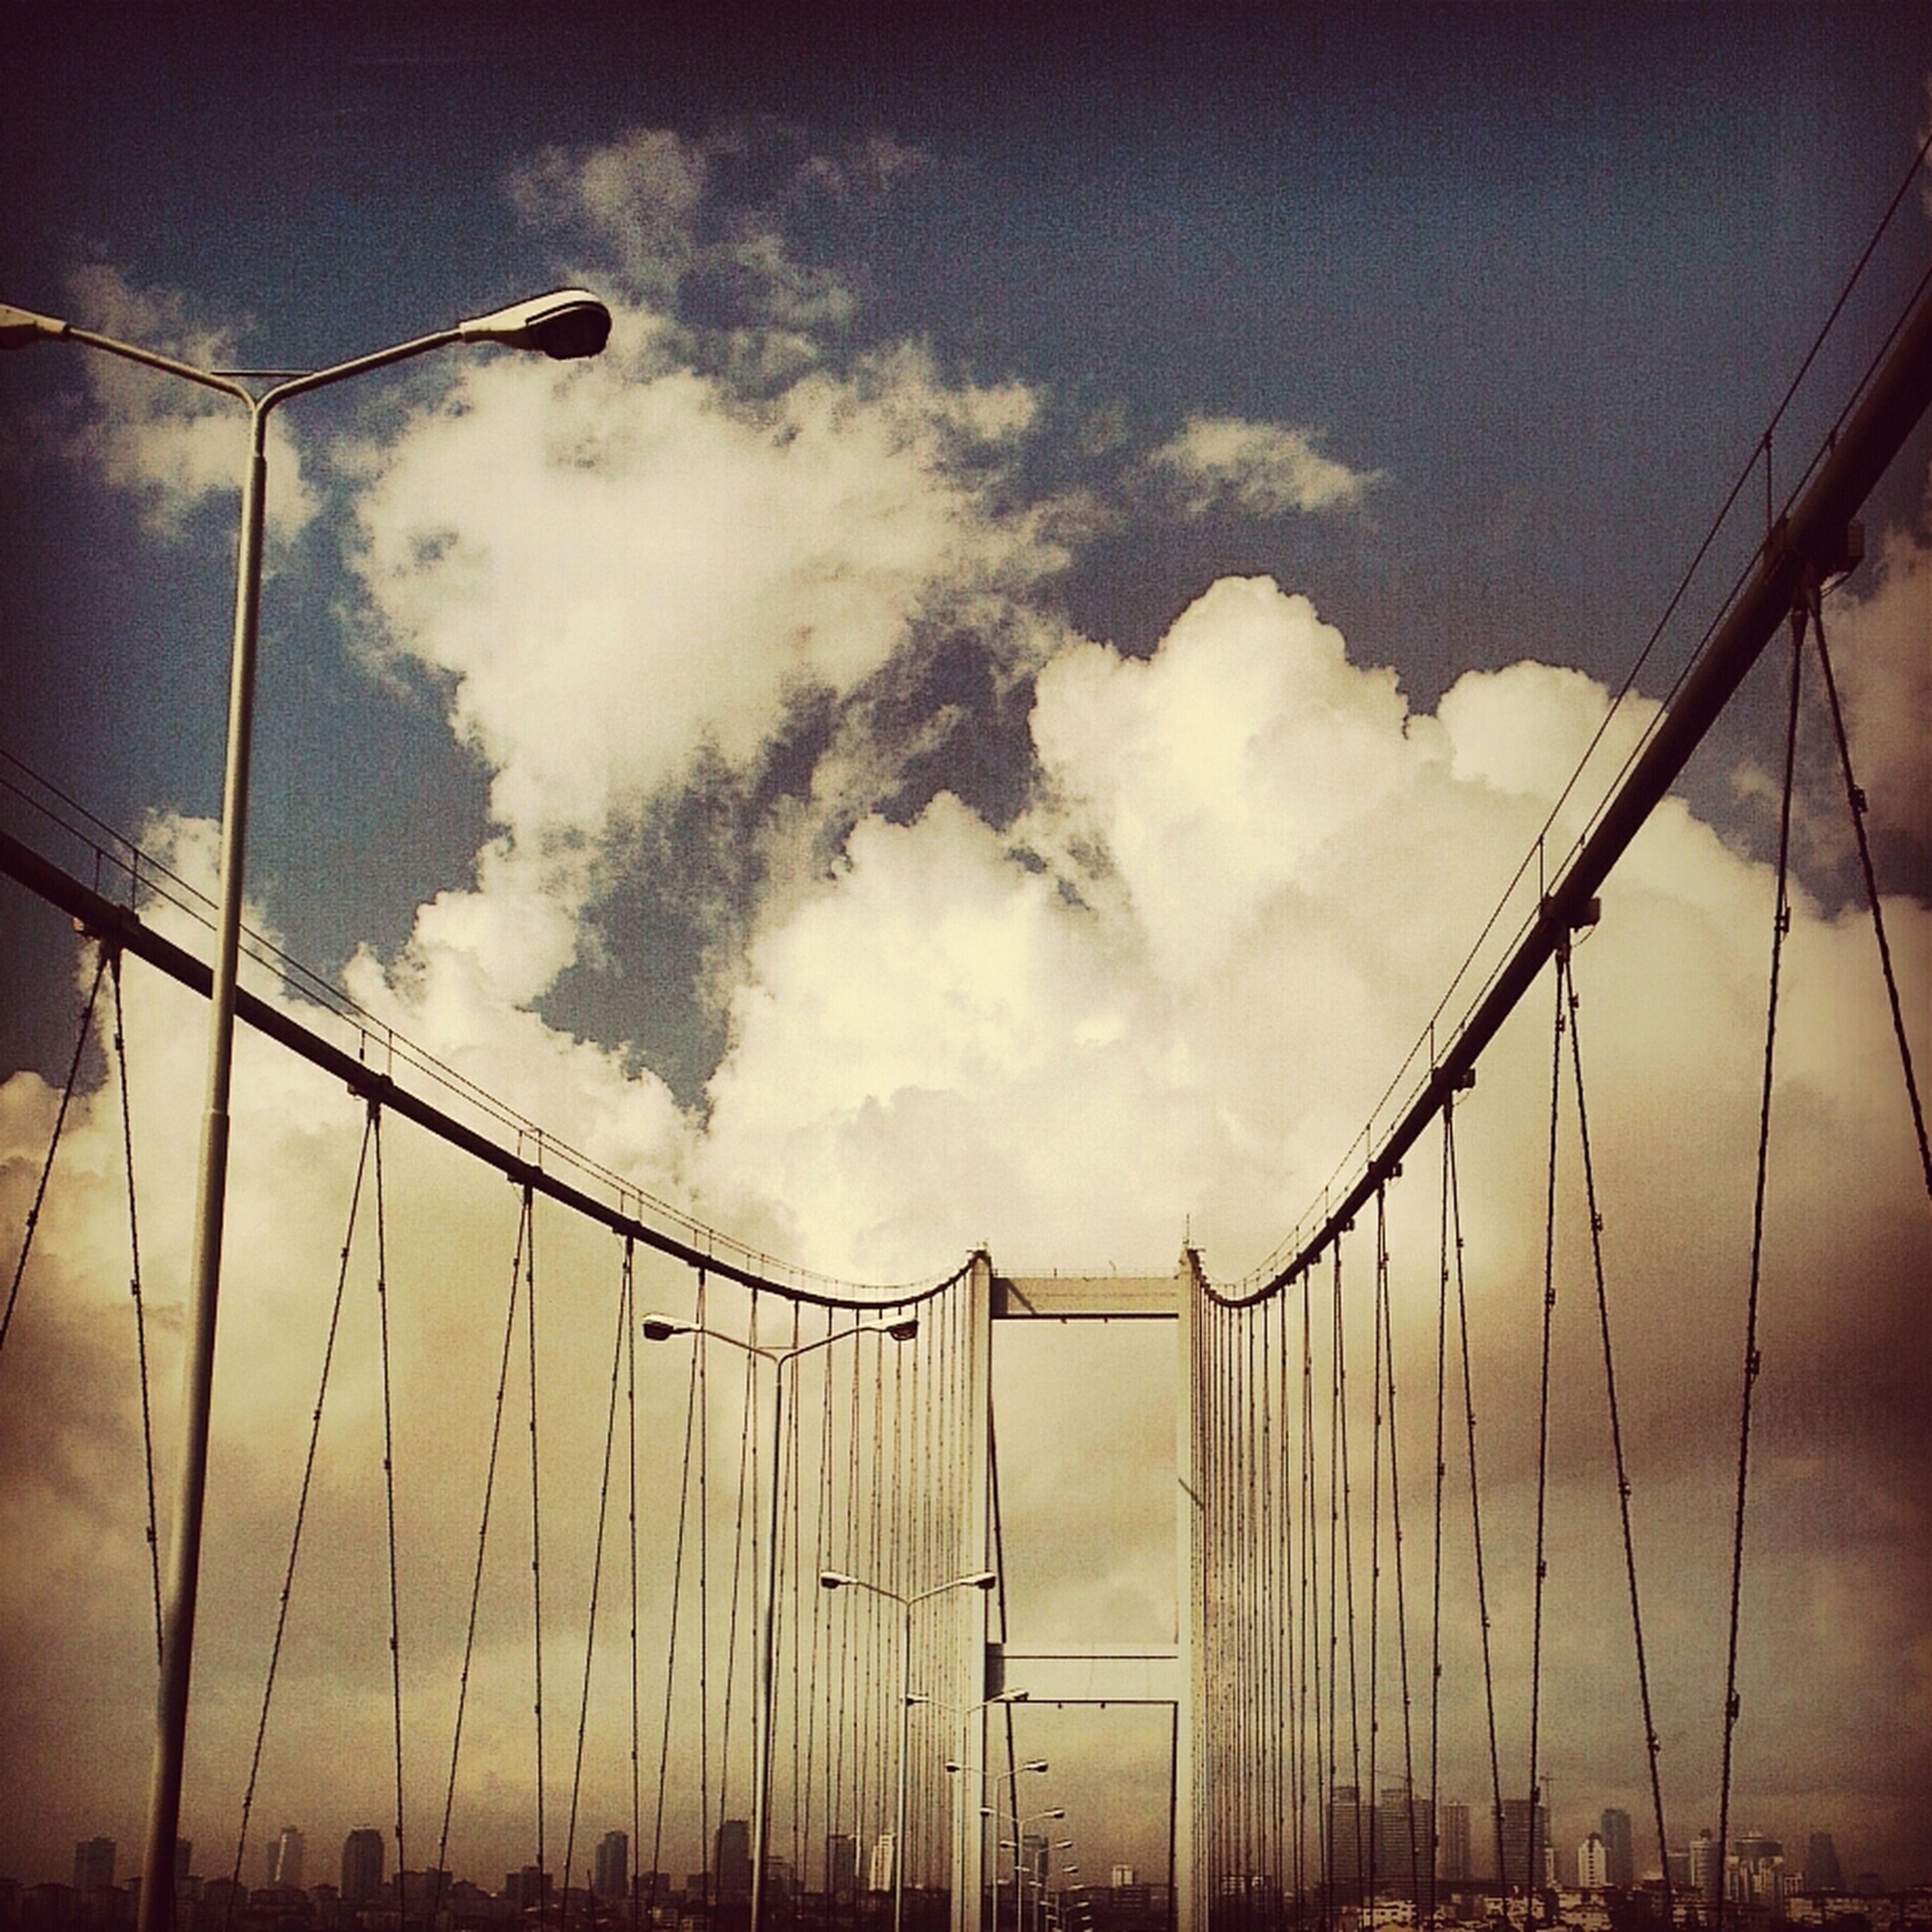 sky, connection, low angle view, bridge - man made structure, cloud - sky, built structure, engineering, architecture, cloudy, transportation, weather, suspension bridge, cloud, cable, outdoors, no people, dusk, overcast, bridge, cable-stayed bridge